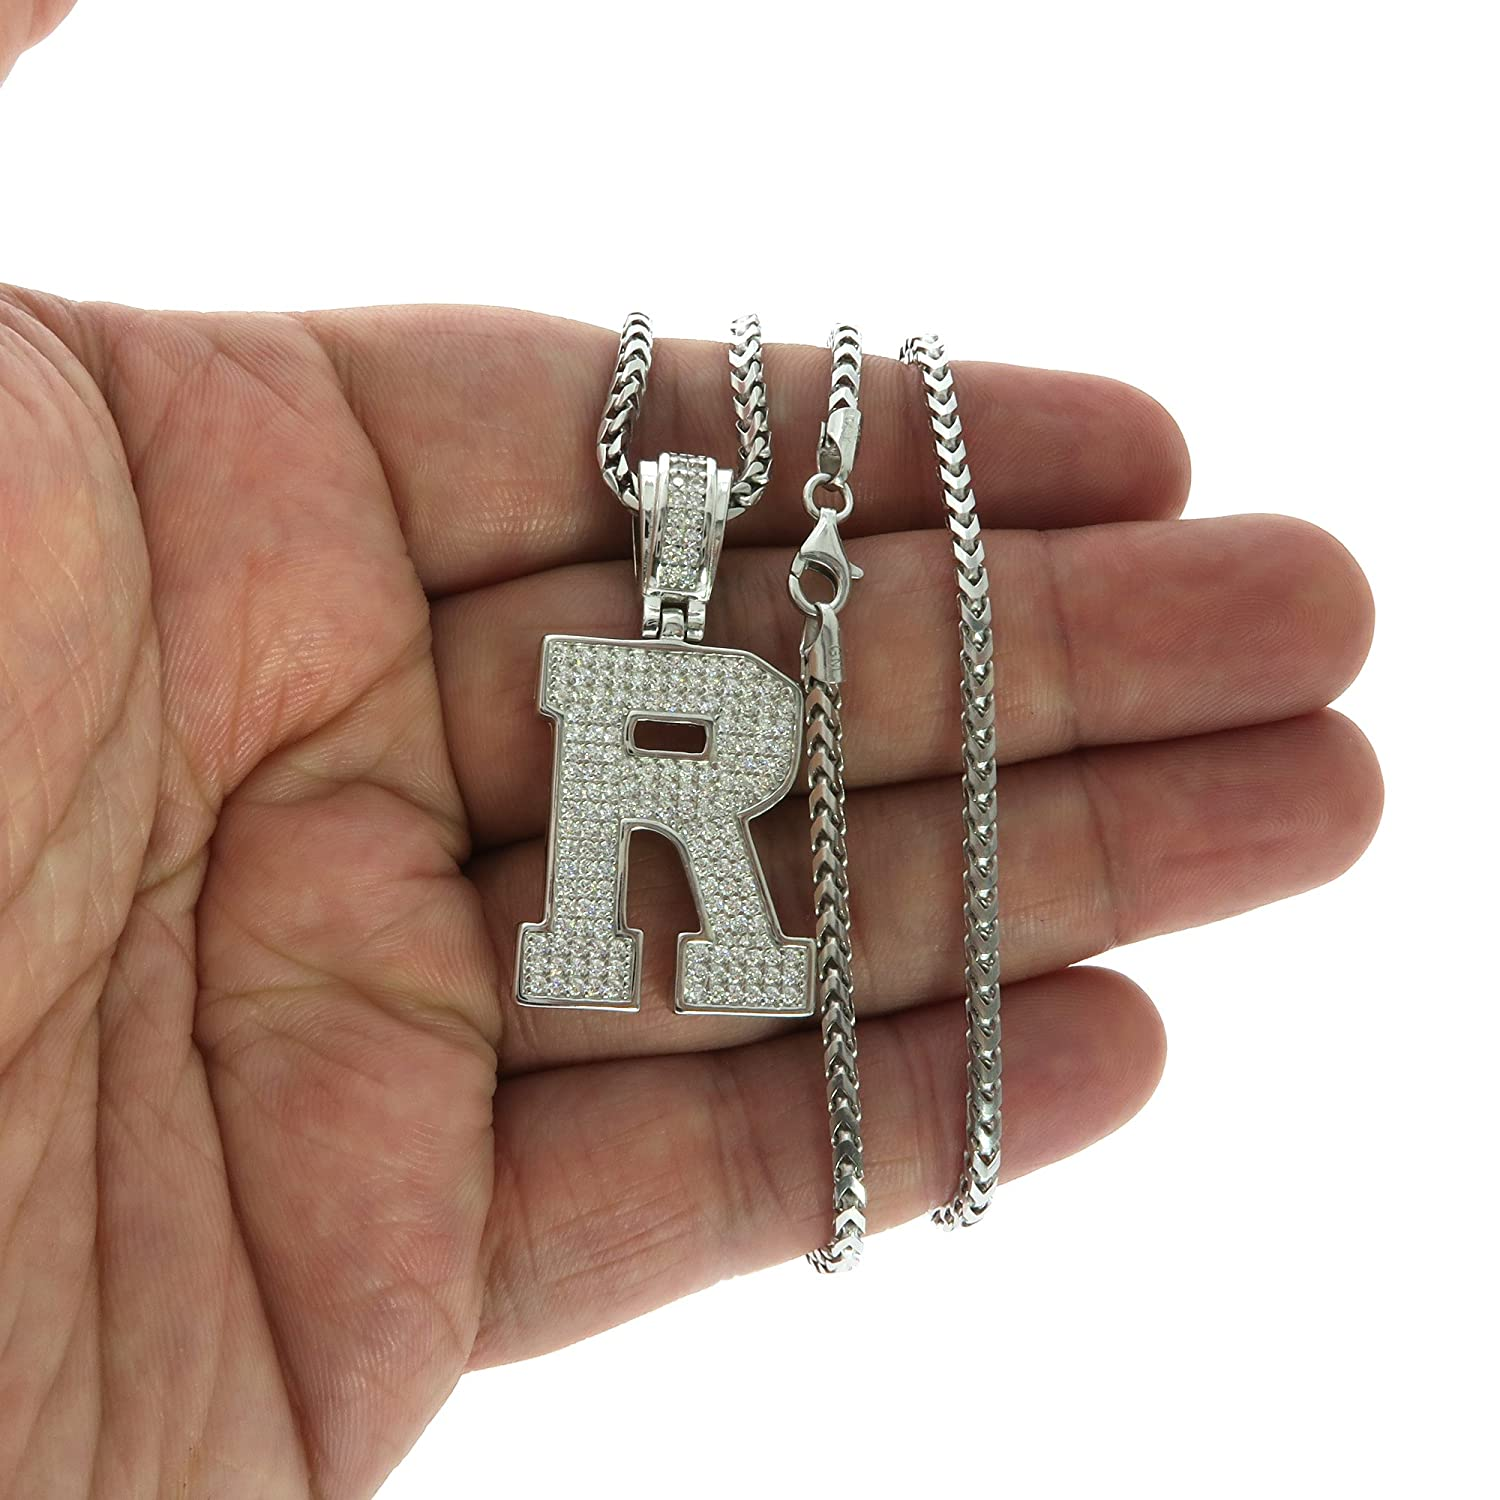 GOLDEN MOON .925 Sterling Silver CZ Initial Letter Pendant Franco Necklace Set Assorted Letters, Chain Lengths